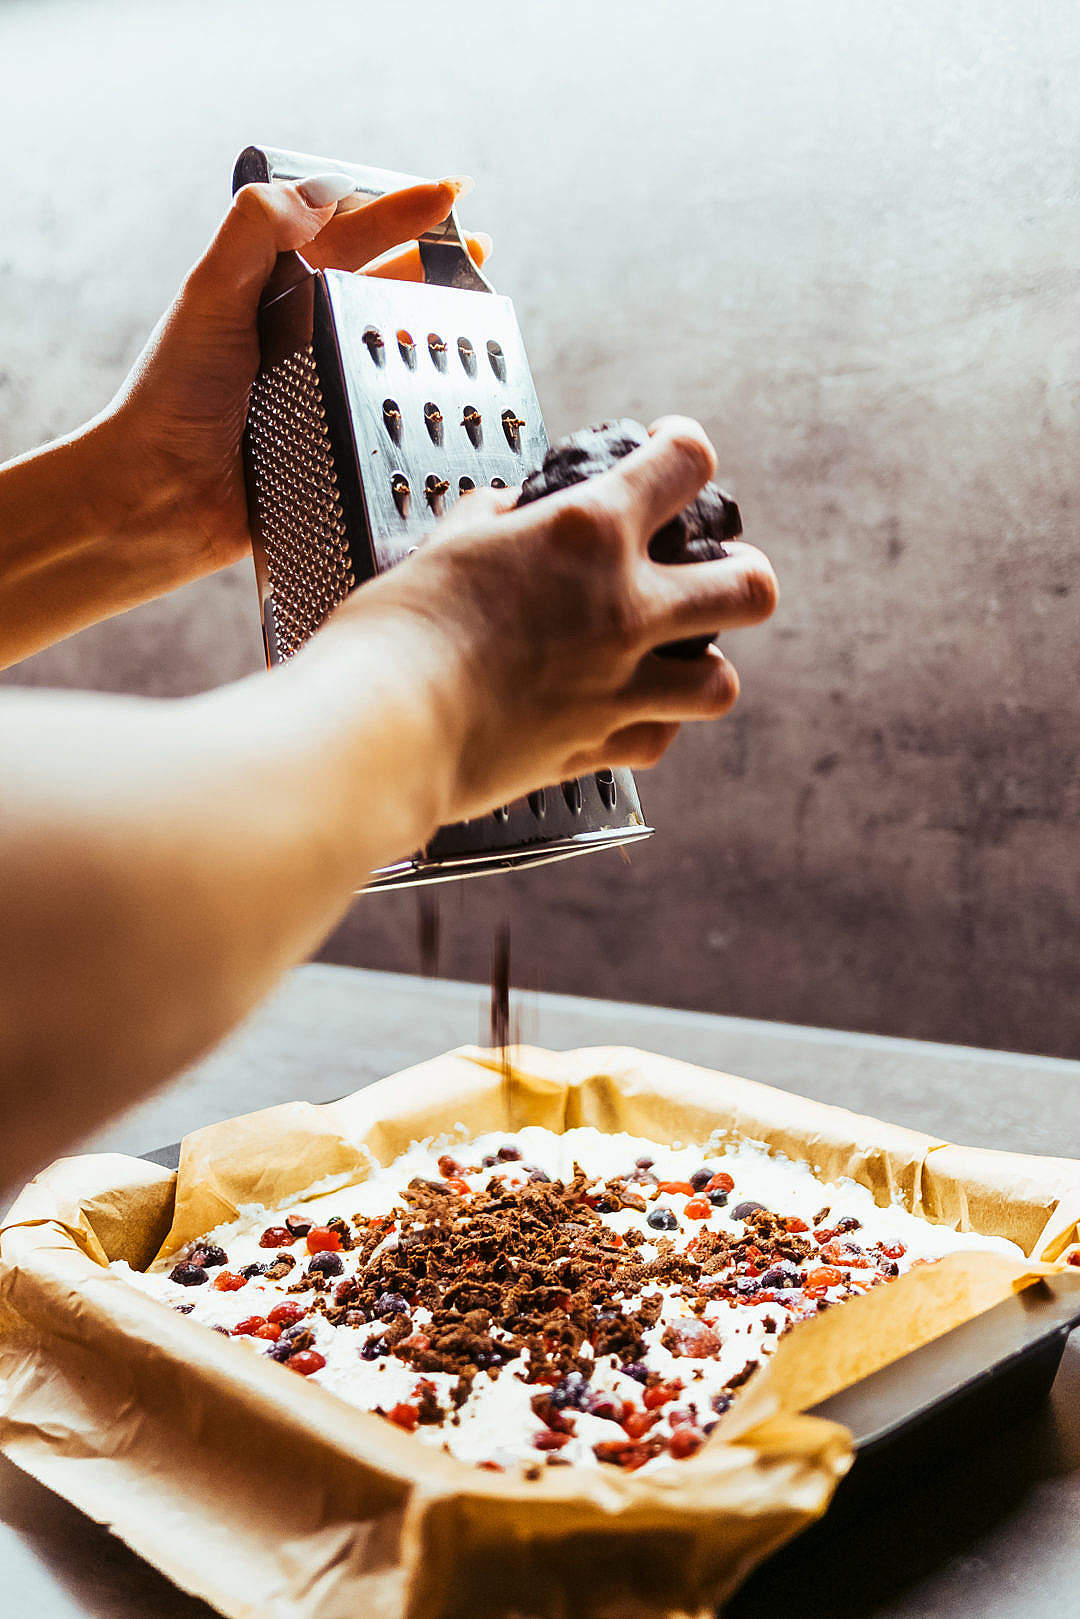 Download Woman Grating Chocolate on a Cake FREE Stock Photo